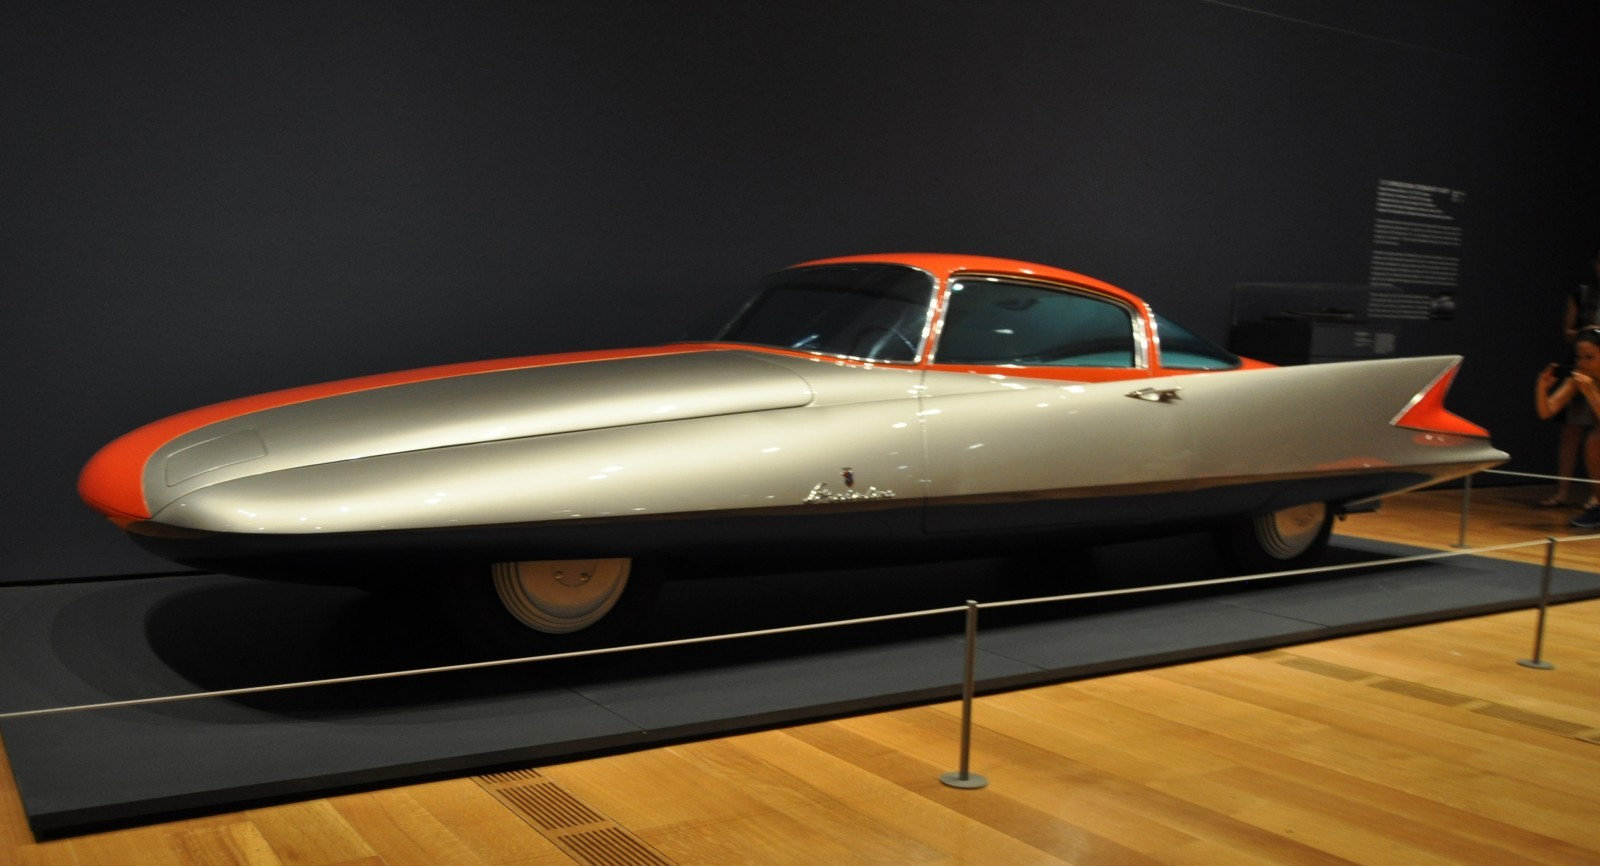 Atlanta Dream Cars - 1955 Chrysler Streamline X Ghilda by GHIA is Turbine Car Ideal 24